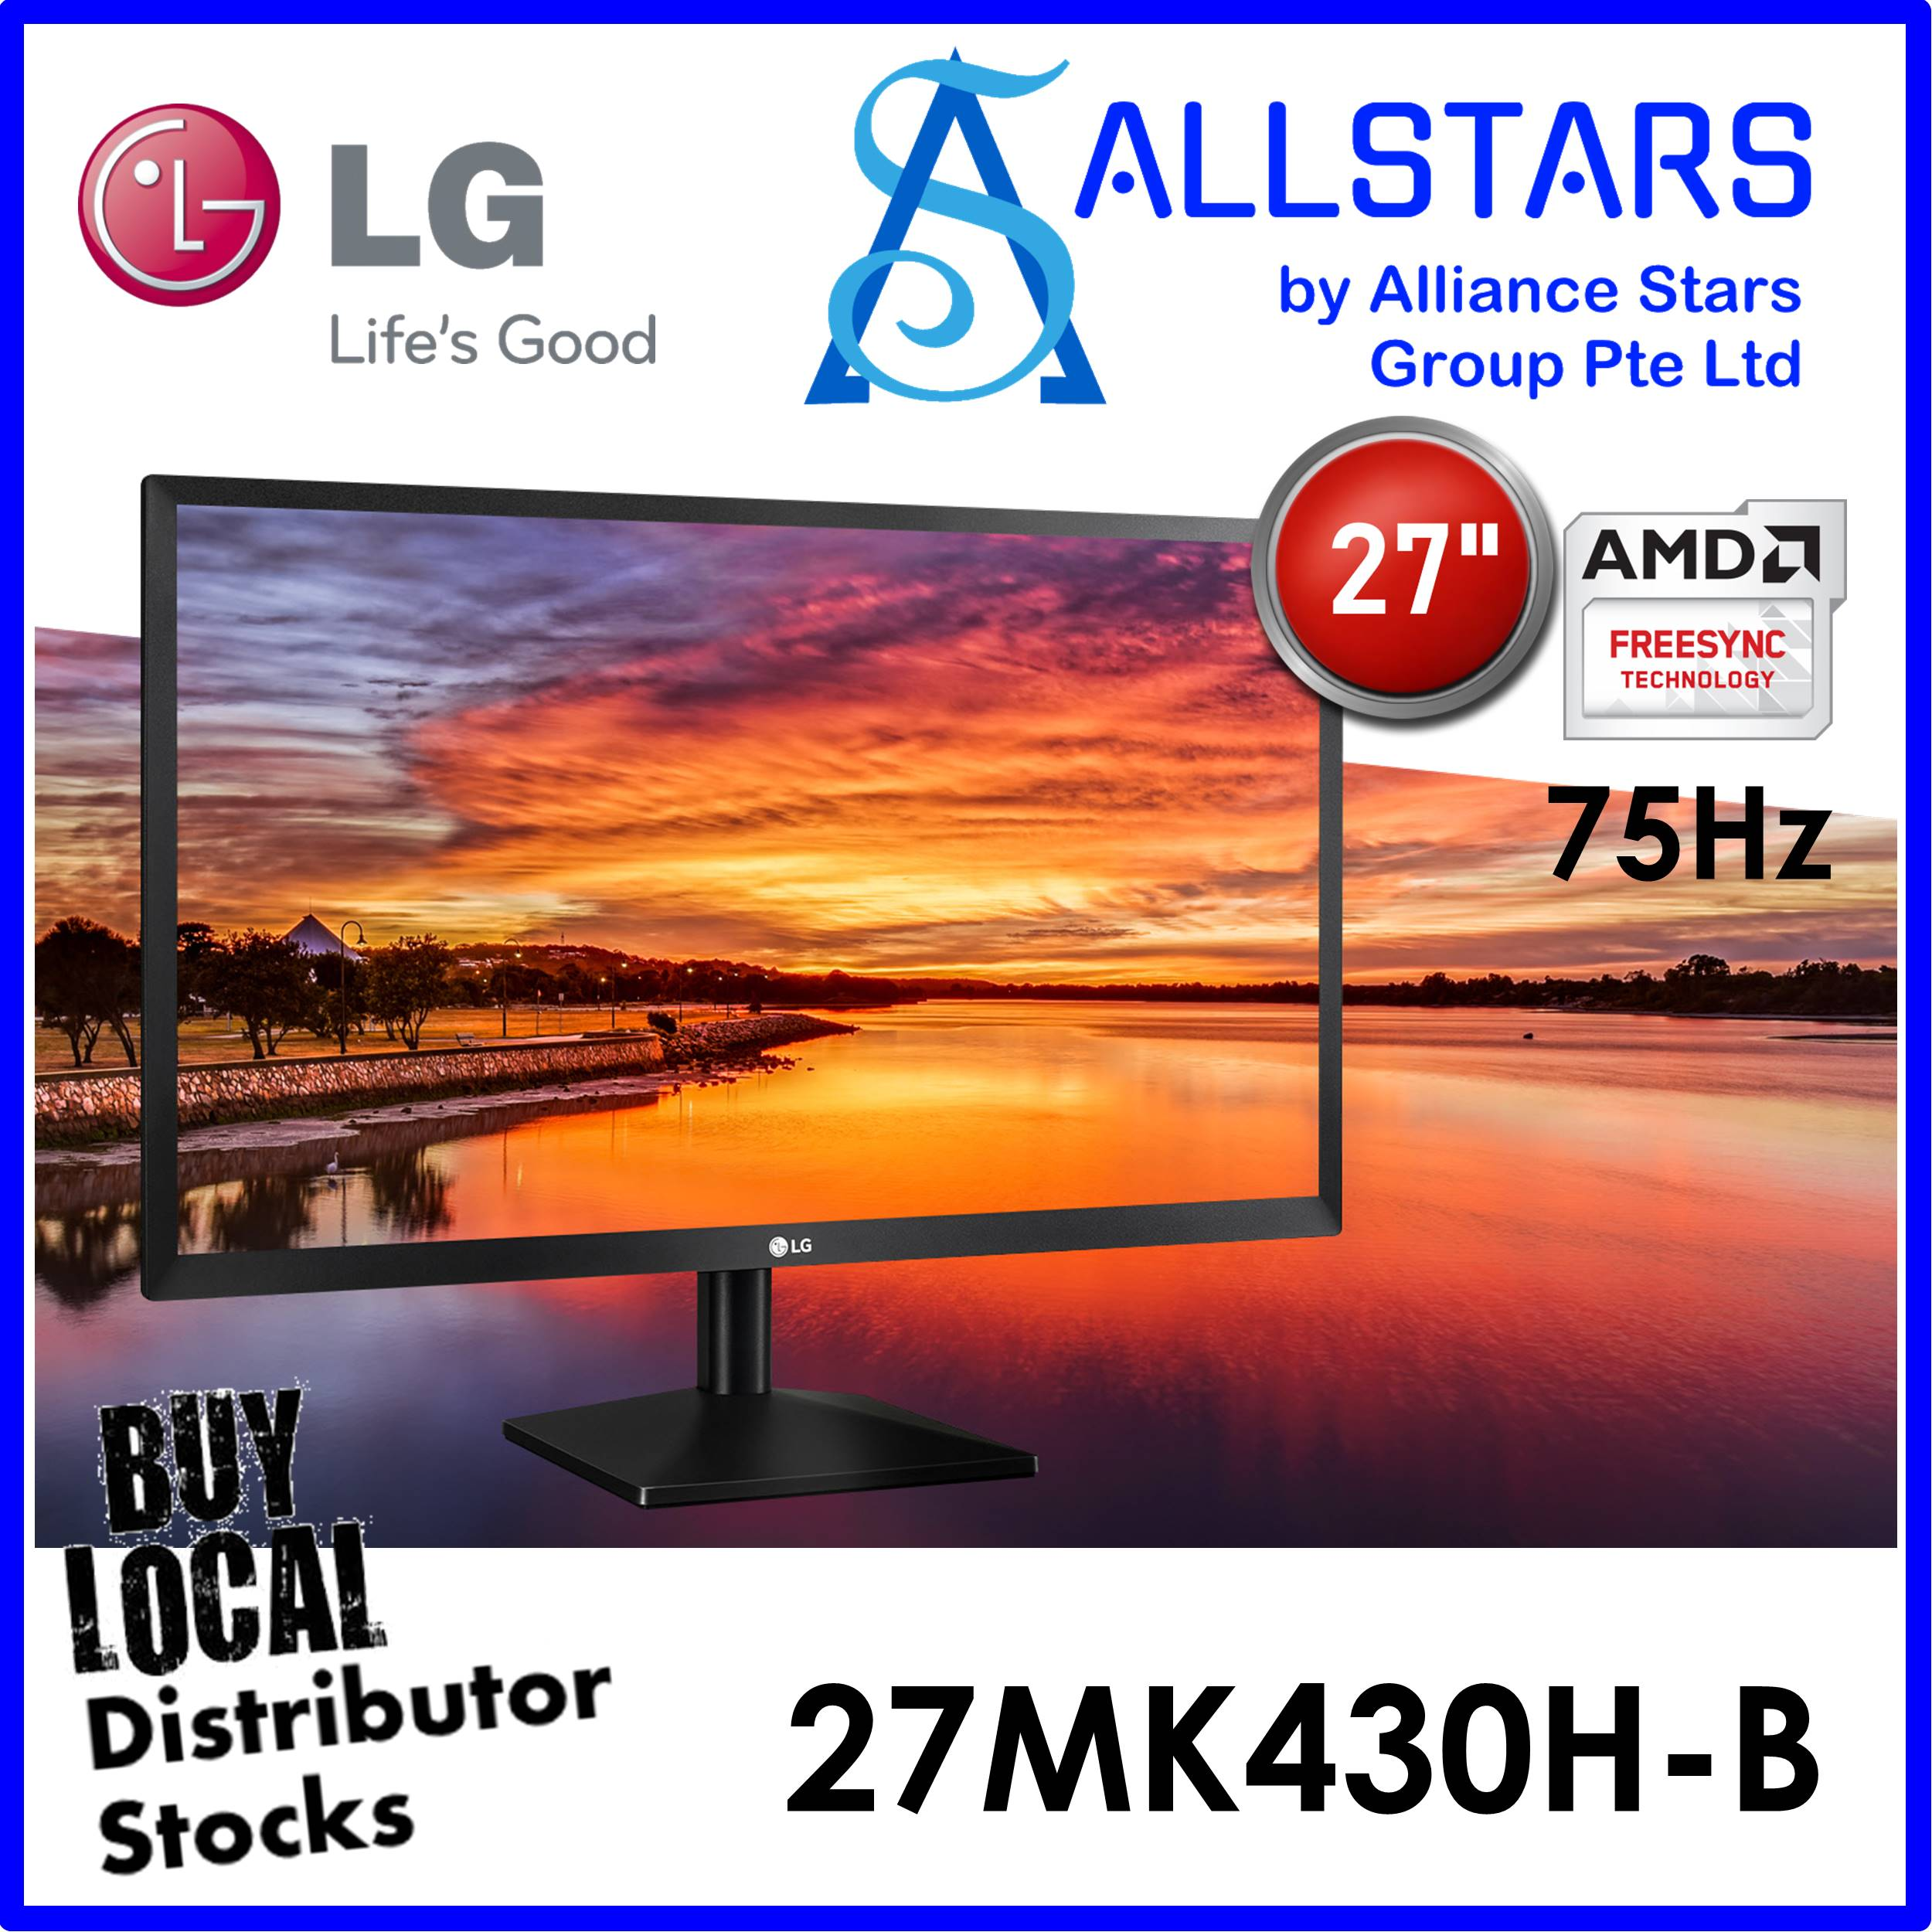 (allstars : We Are Back / Display Promo) Lg 27 Inch 27mk430 / 27mk430h / 27mk430h-B Full Hd Ips Monitor / 75hz / Freesync / Hdmi+vga / Audio Out / Vesa Mount Compatible 100x100mm (warranty 3years With Lg Sg).